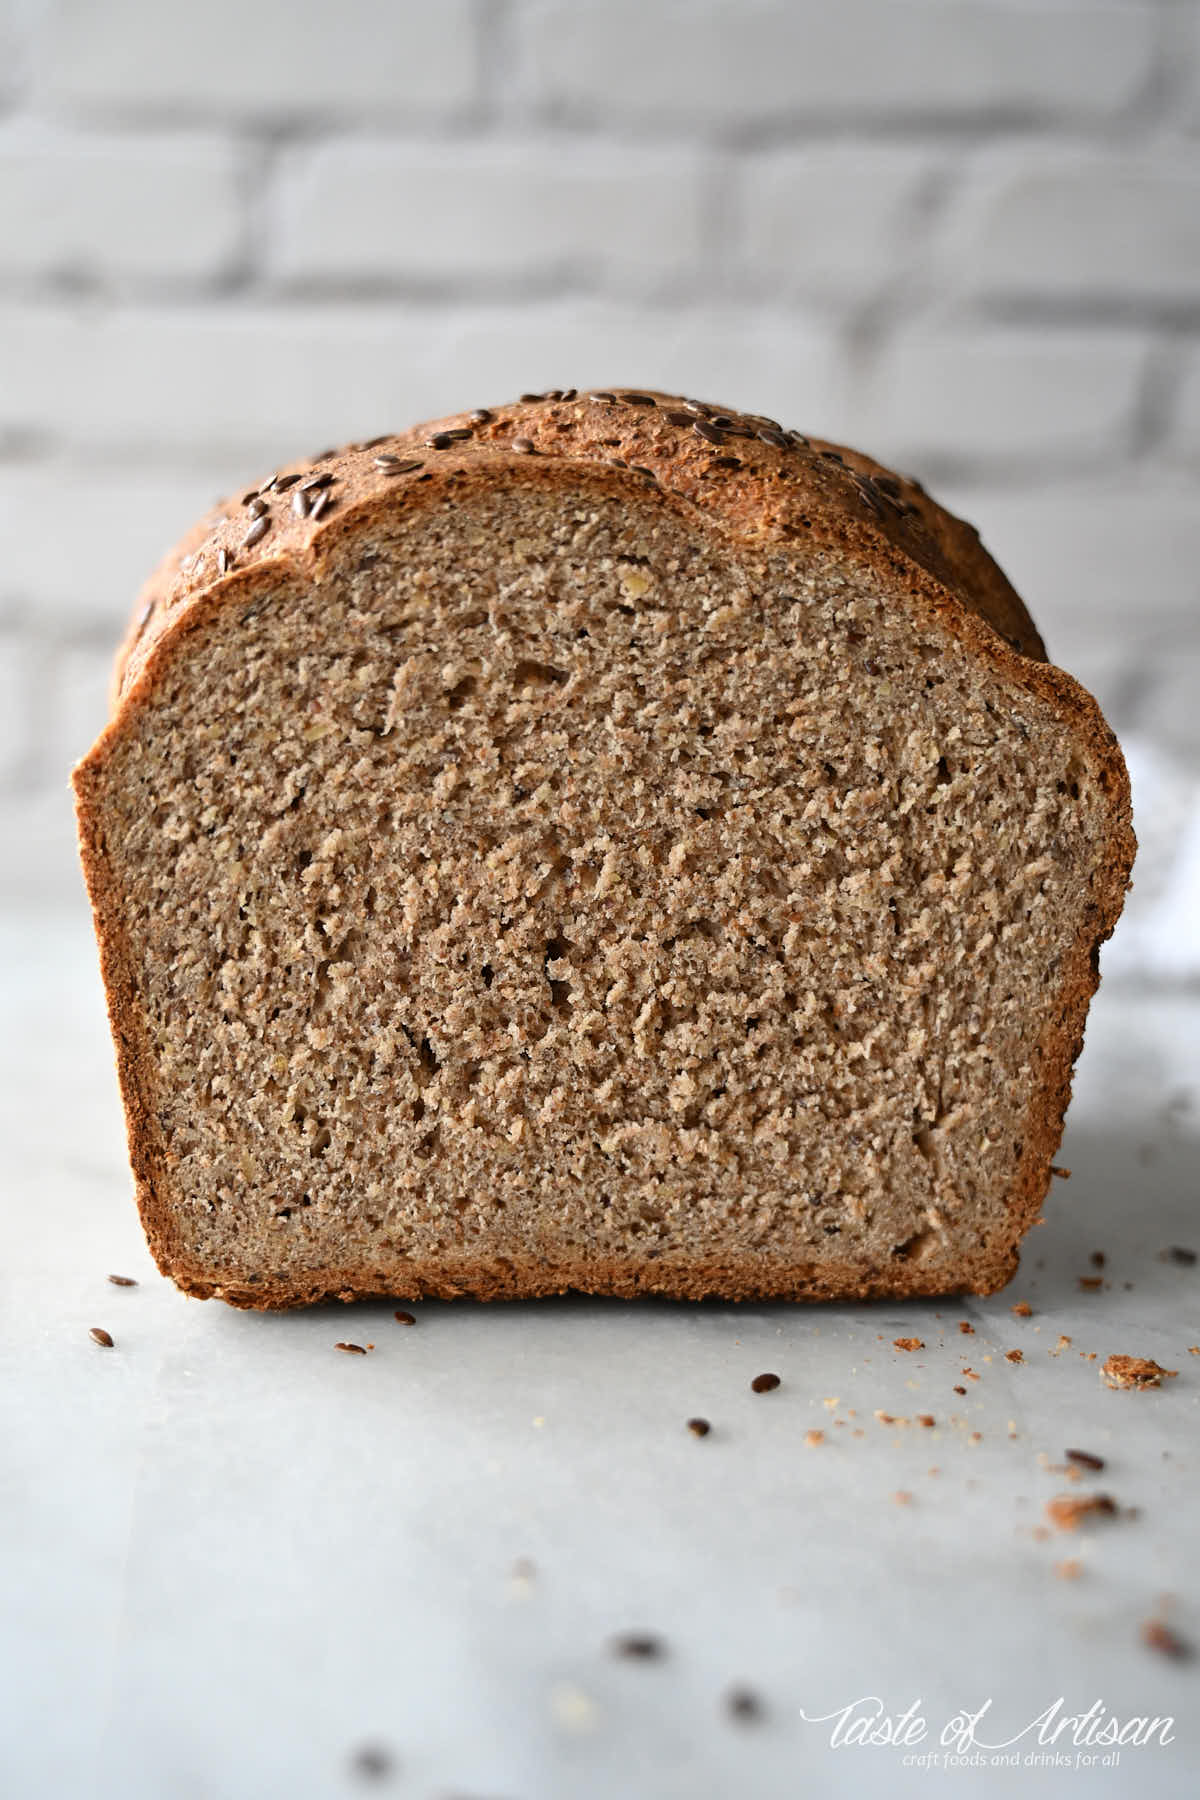 Flaxseed bread loaf cut in half, view of crumb.